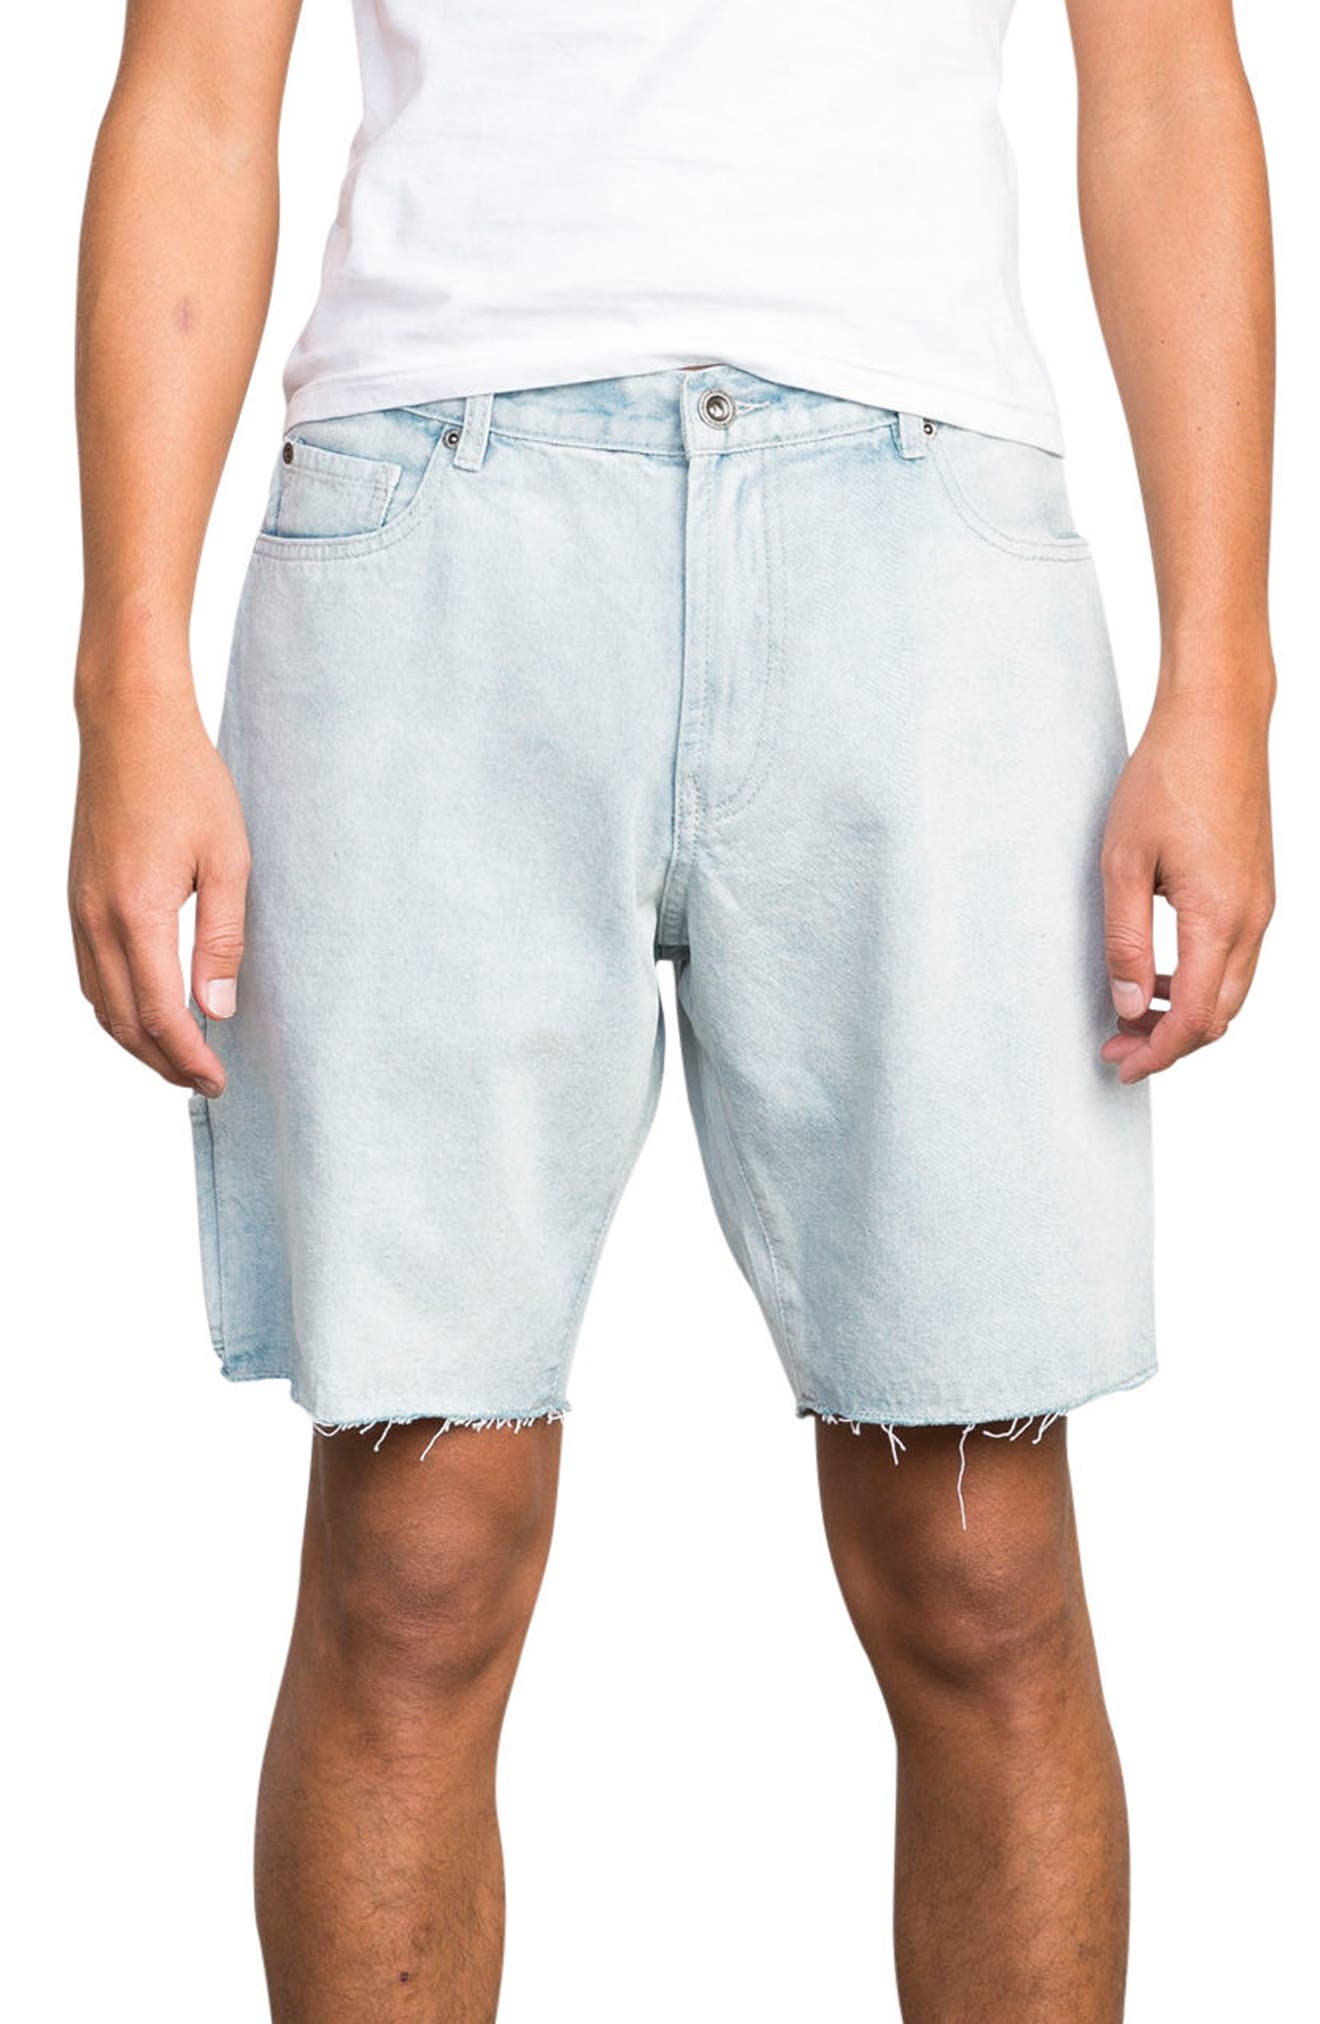 Work It Denim Shorts,                         Main,                         color, Denim